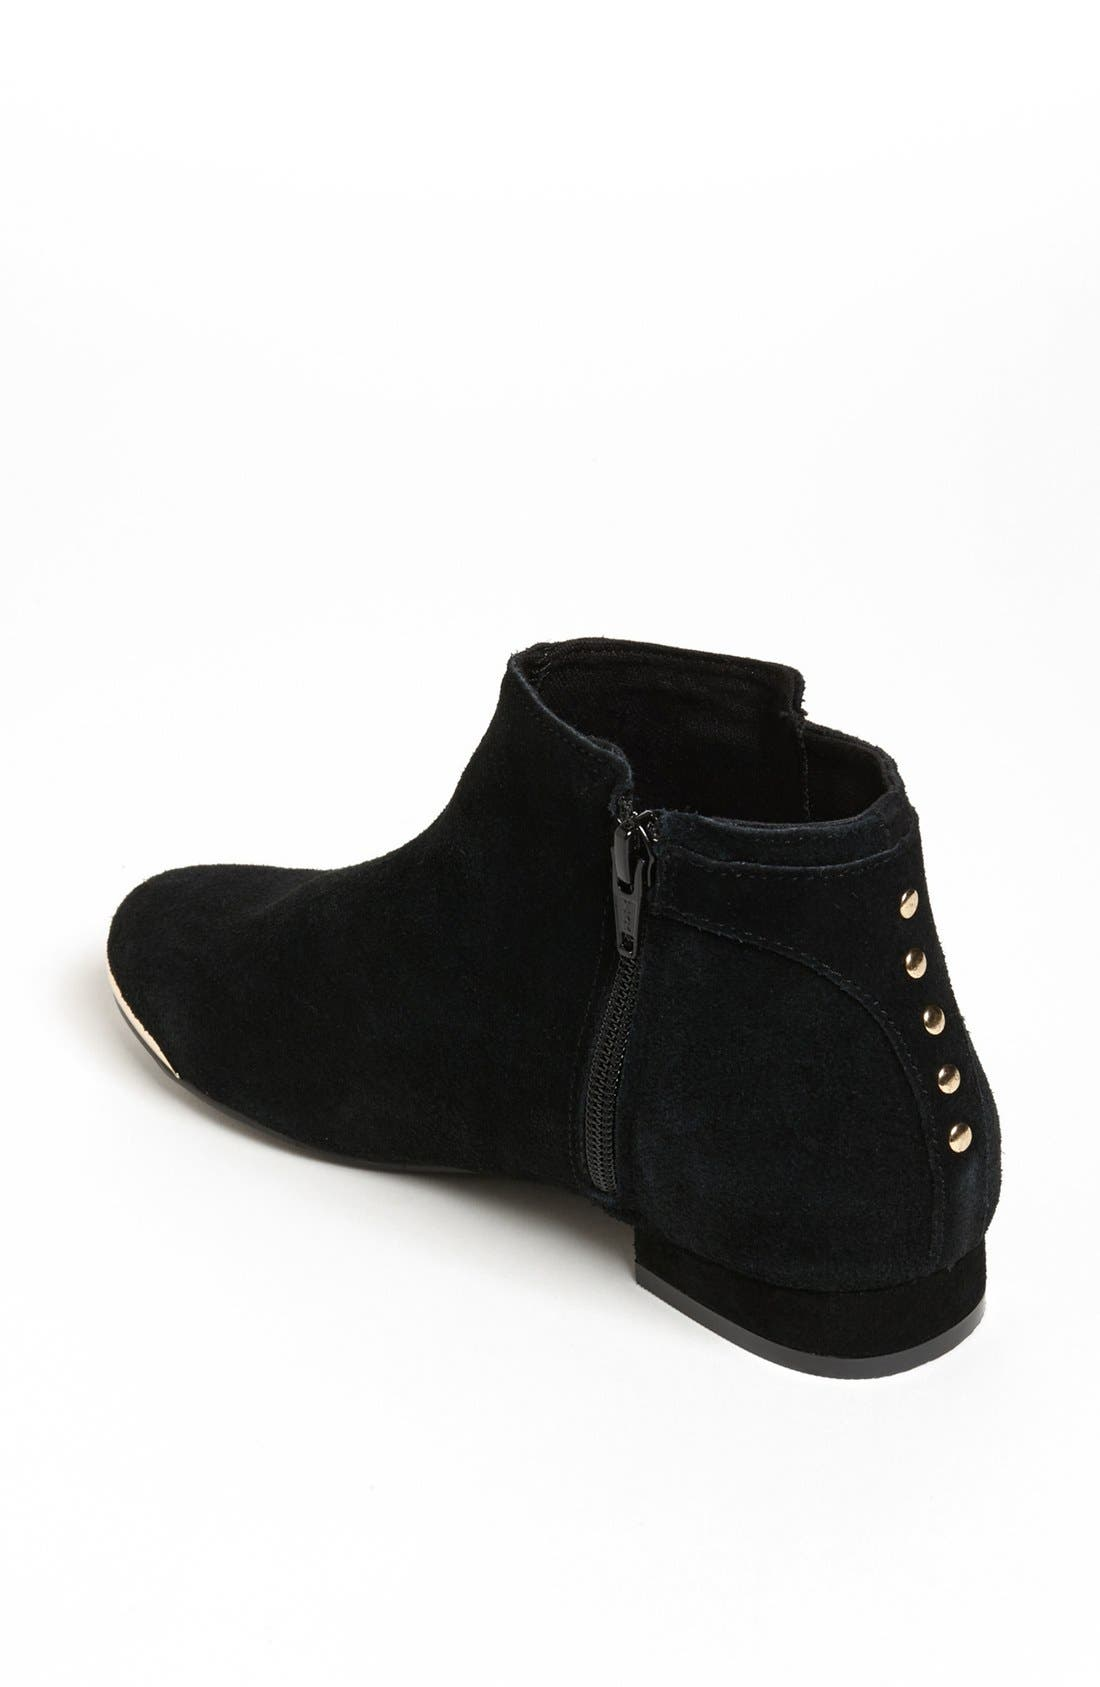 Alternate Image 2  - Topshop 'Mam' Studded Bootie